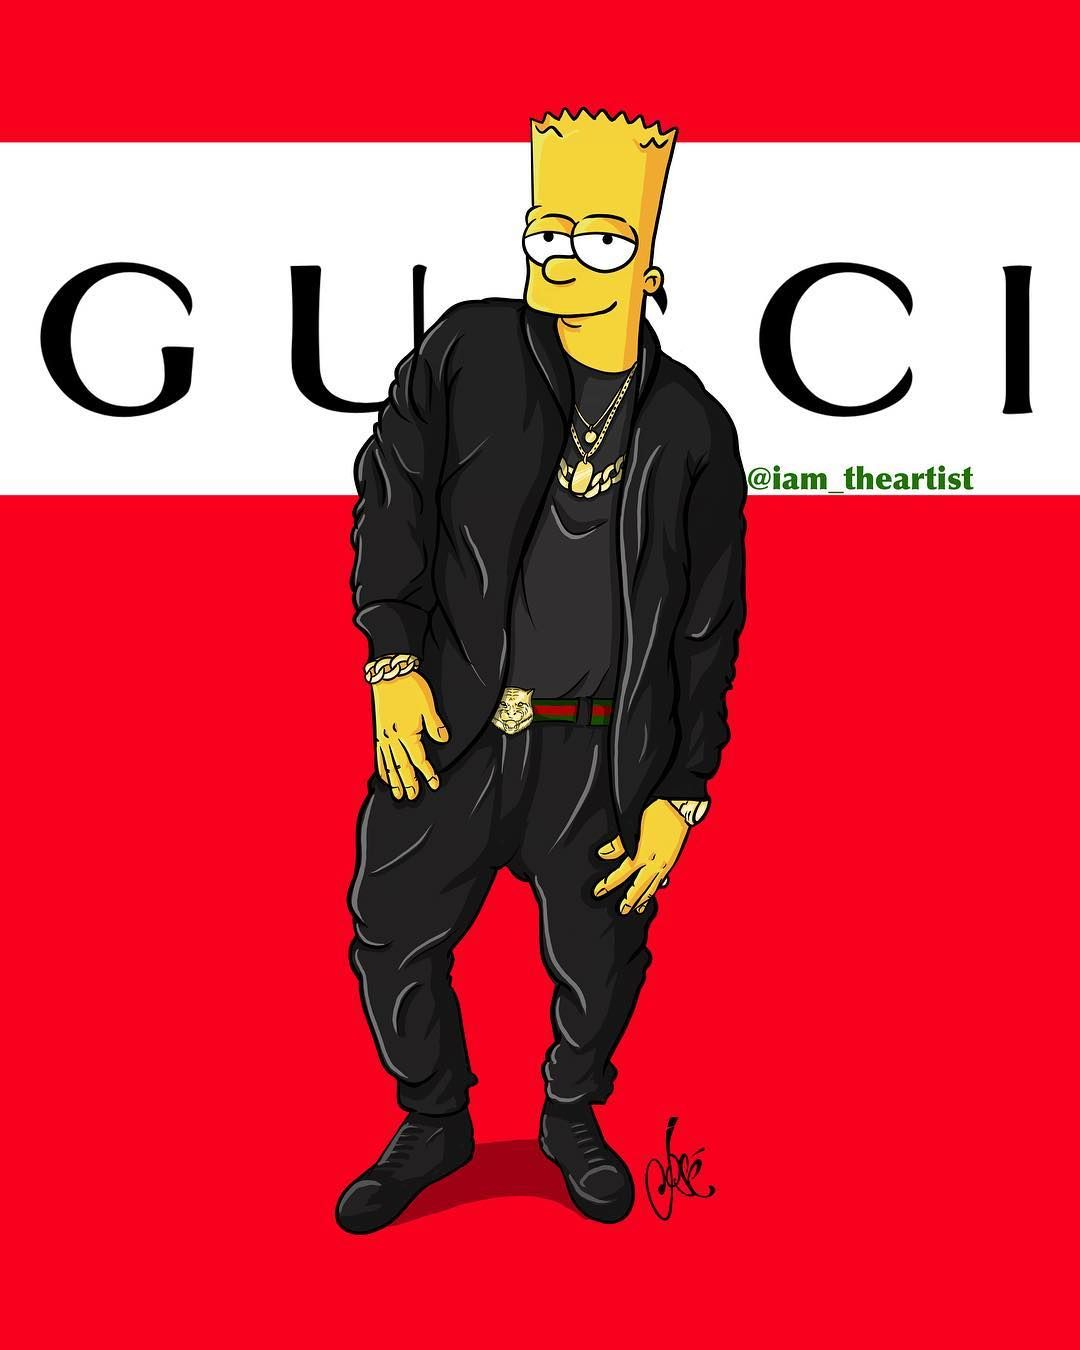 Goonzart On Instagram Bart Simpson Thesimpsons Gucci Elalfaeljefe Apple Bartsimpson Bart Ipadpro Ipadart Nike Ni In 2020 Bart Simpson Art Bart Bart Simpson